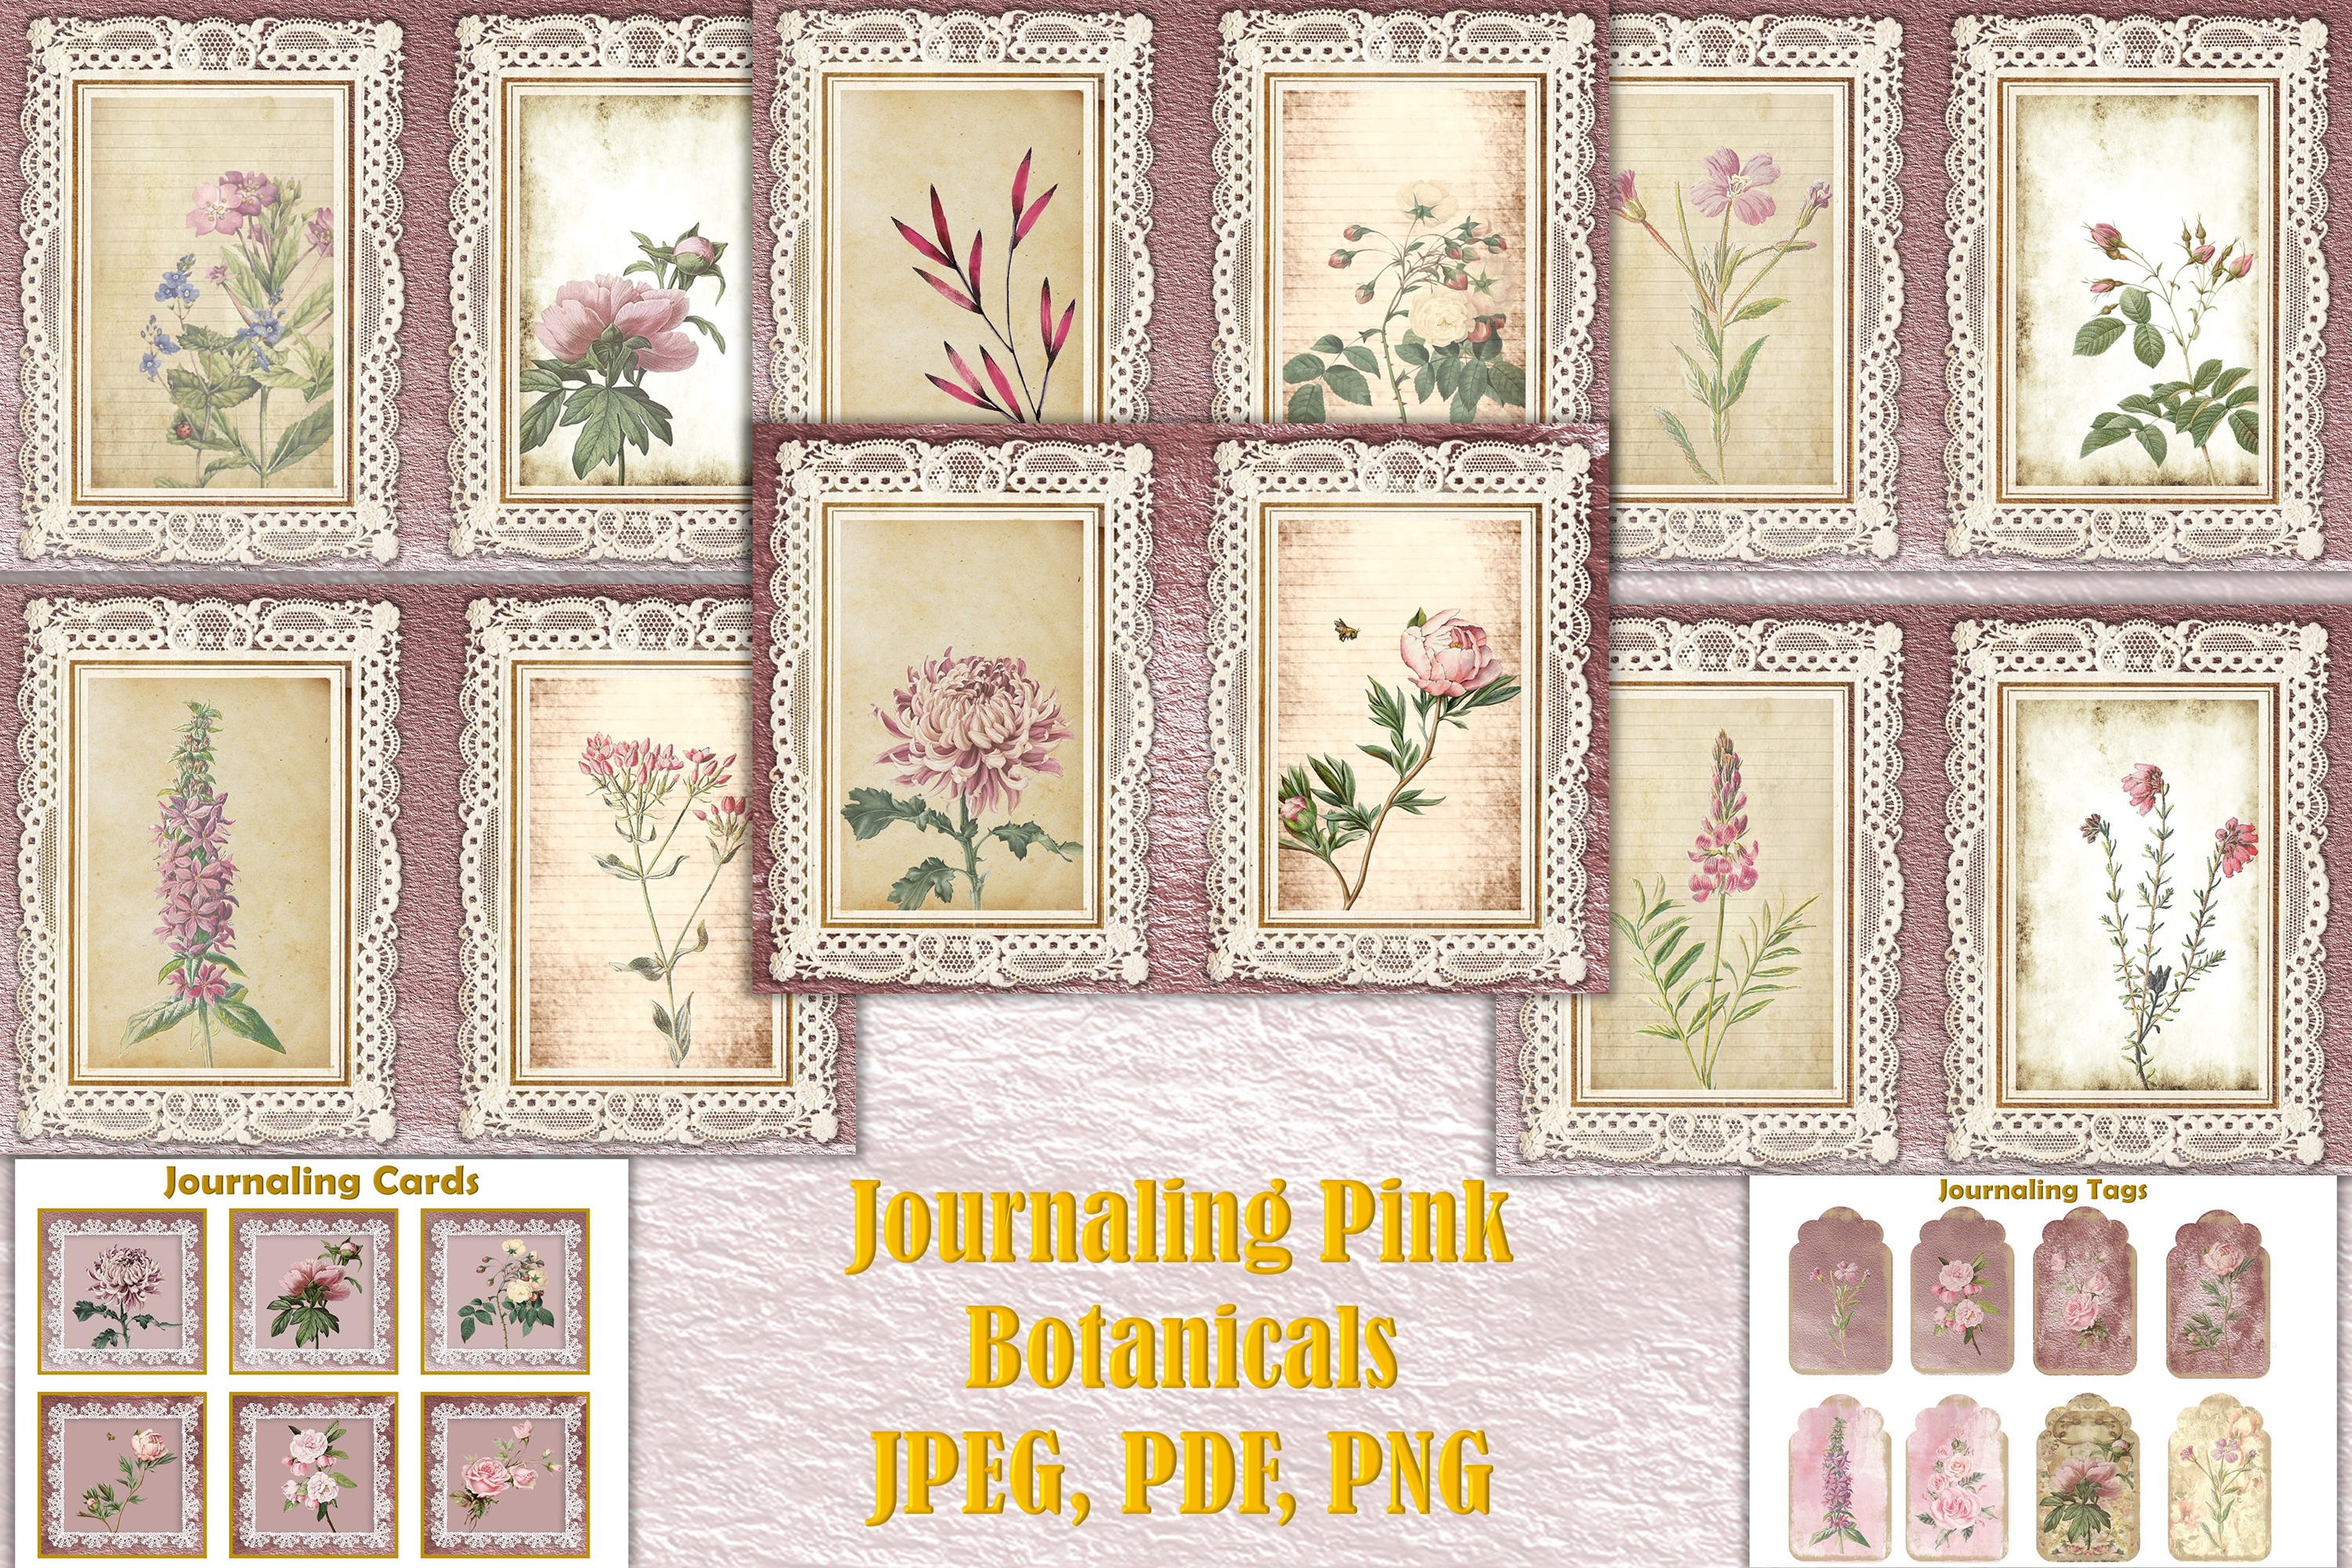 Download Free Journal Kit Pink Botanicals Free Clipart Graphic By The Paper SVG Cut Files